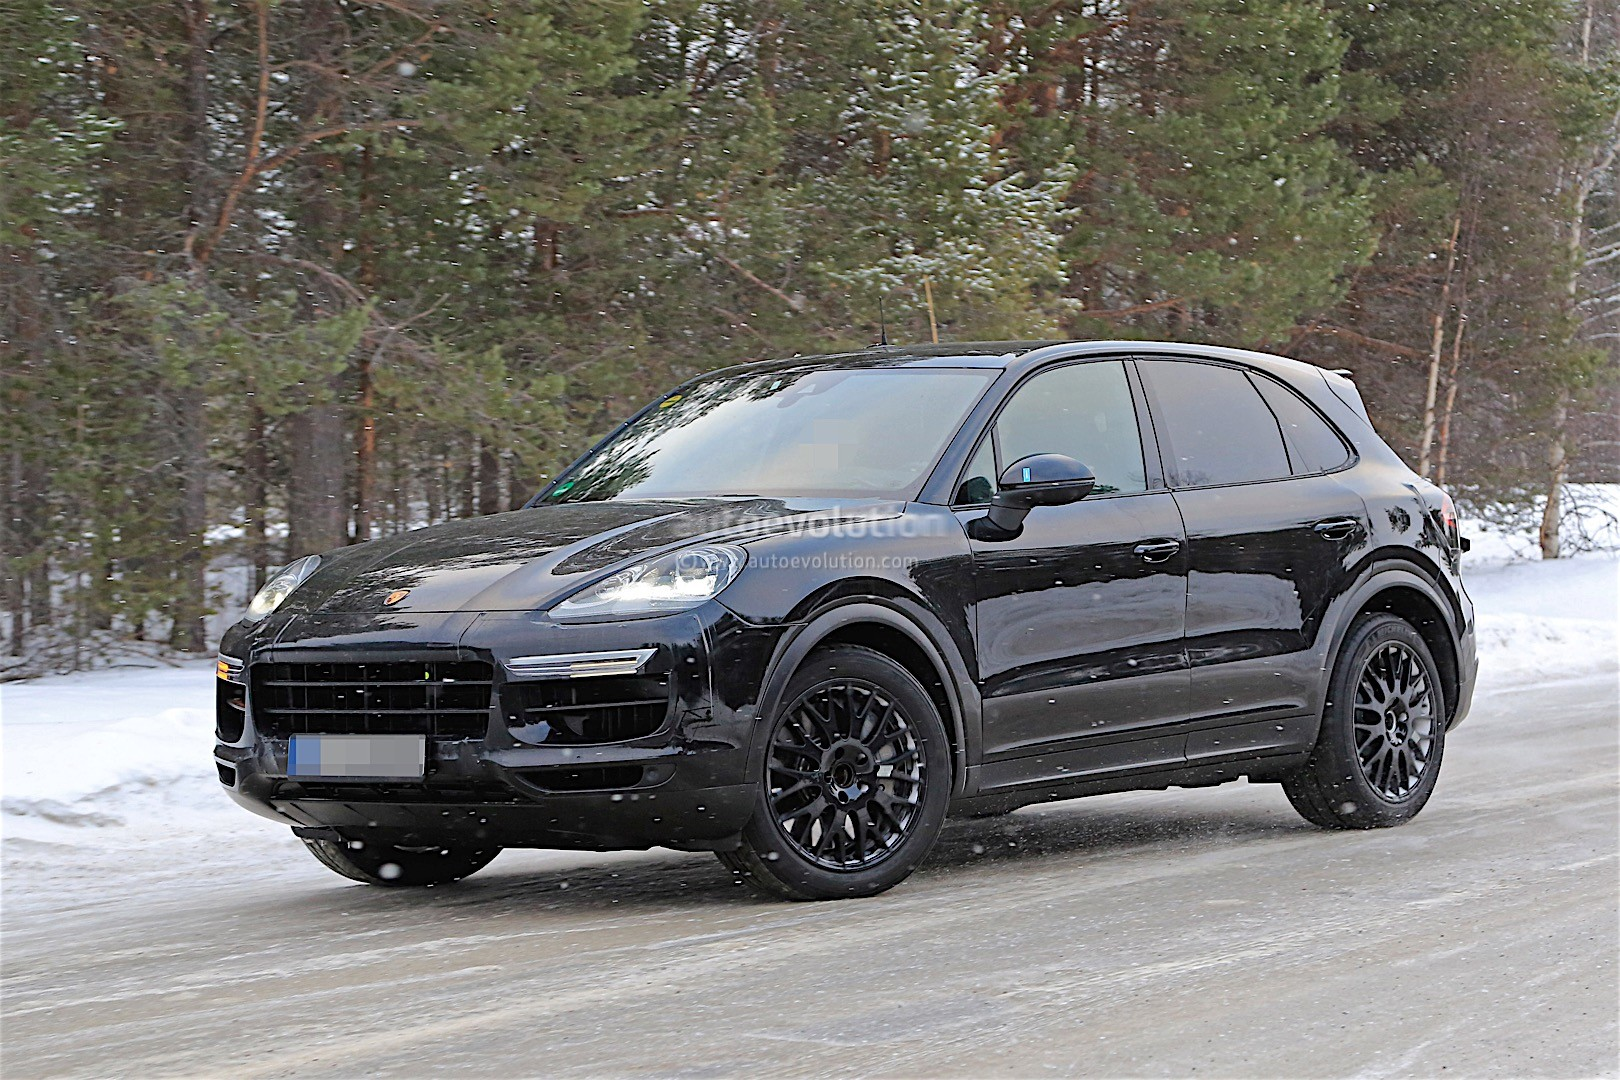 2018 porsche cayenne spied with mild camo expect to see production version soon autoevolution. Black Bedroom Furniture Sets. Home Design Ideas